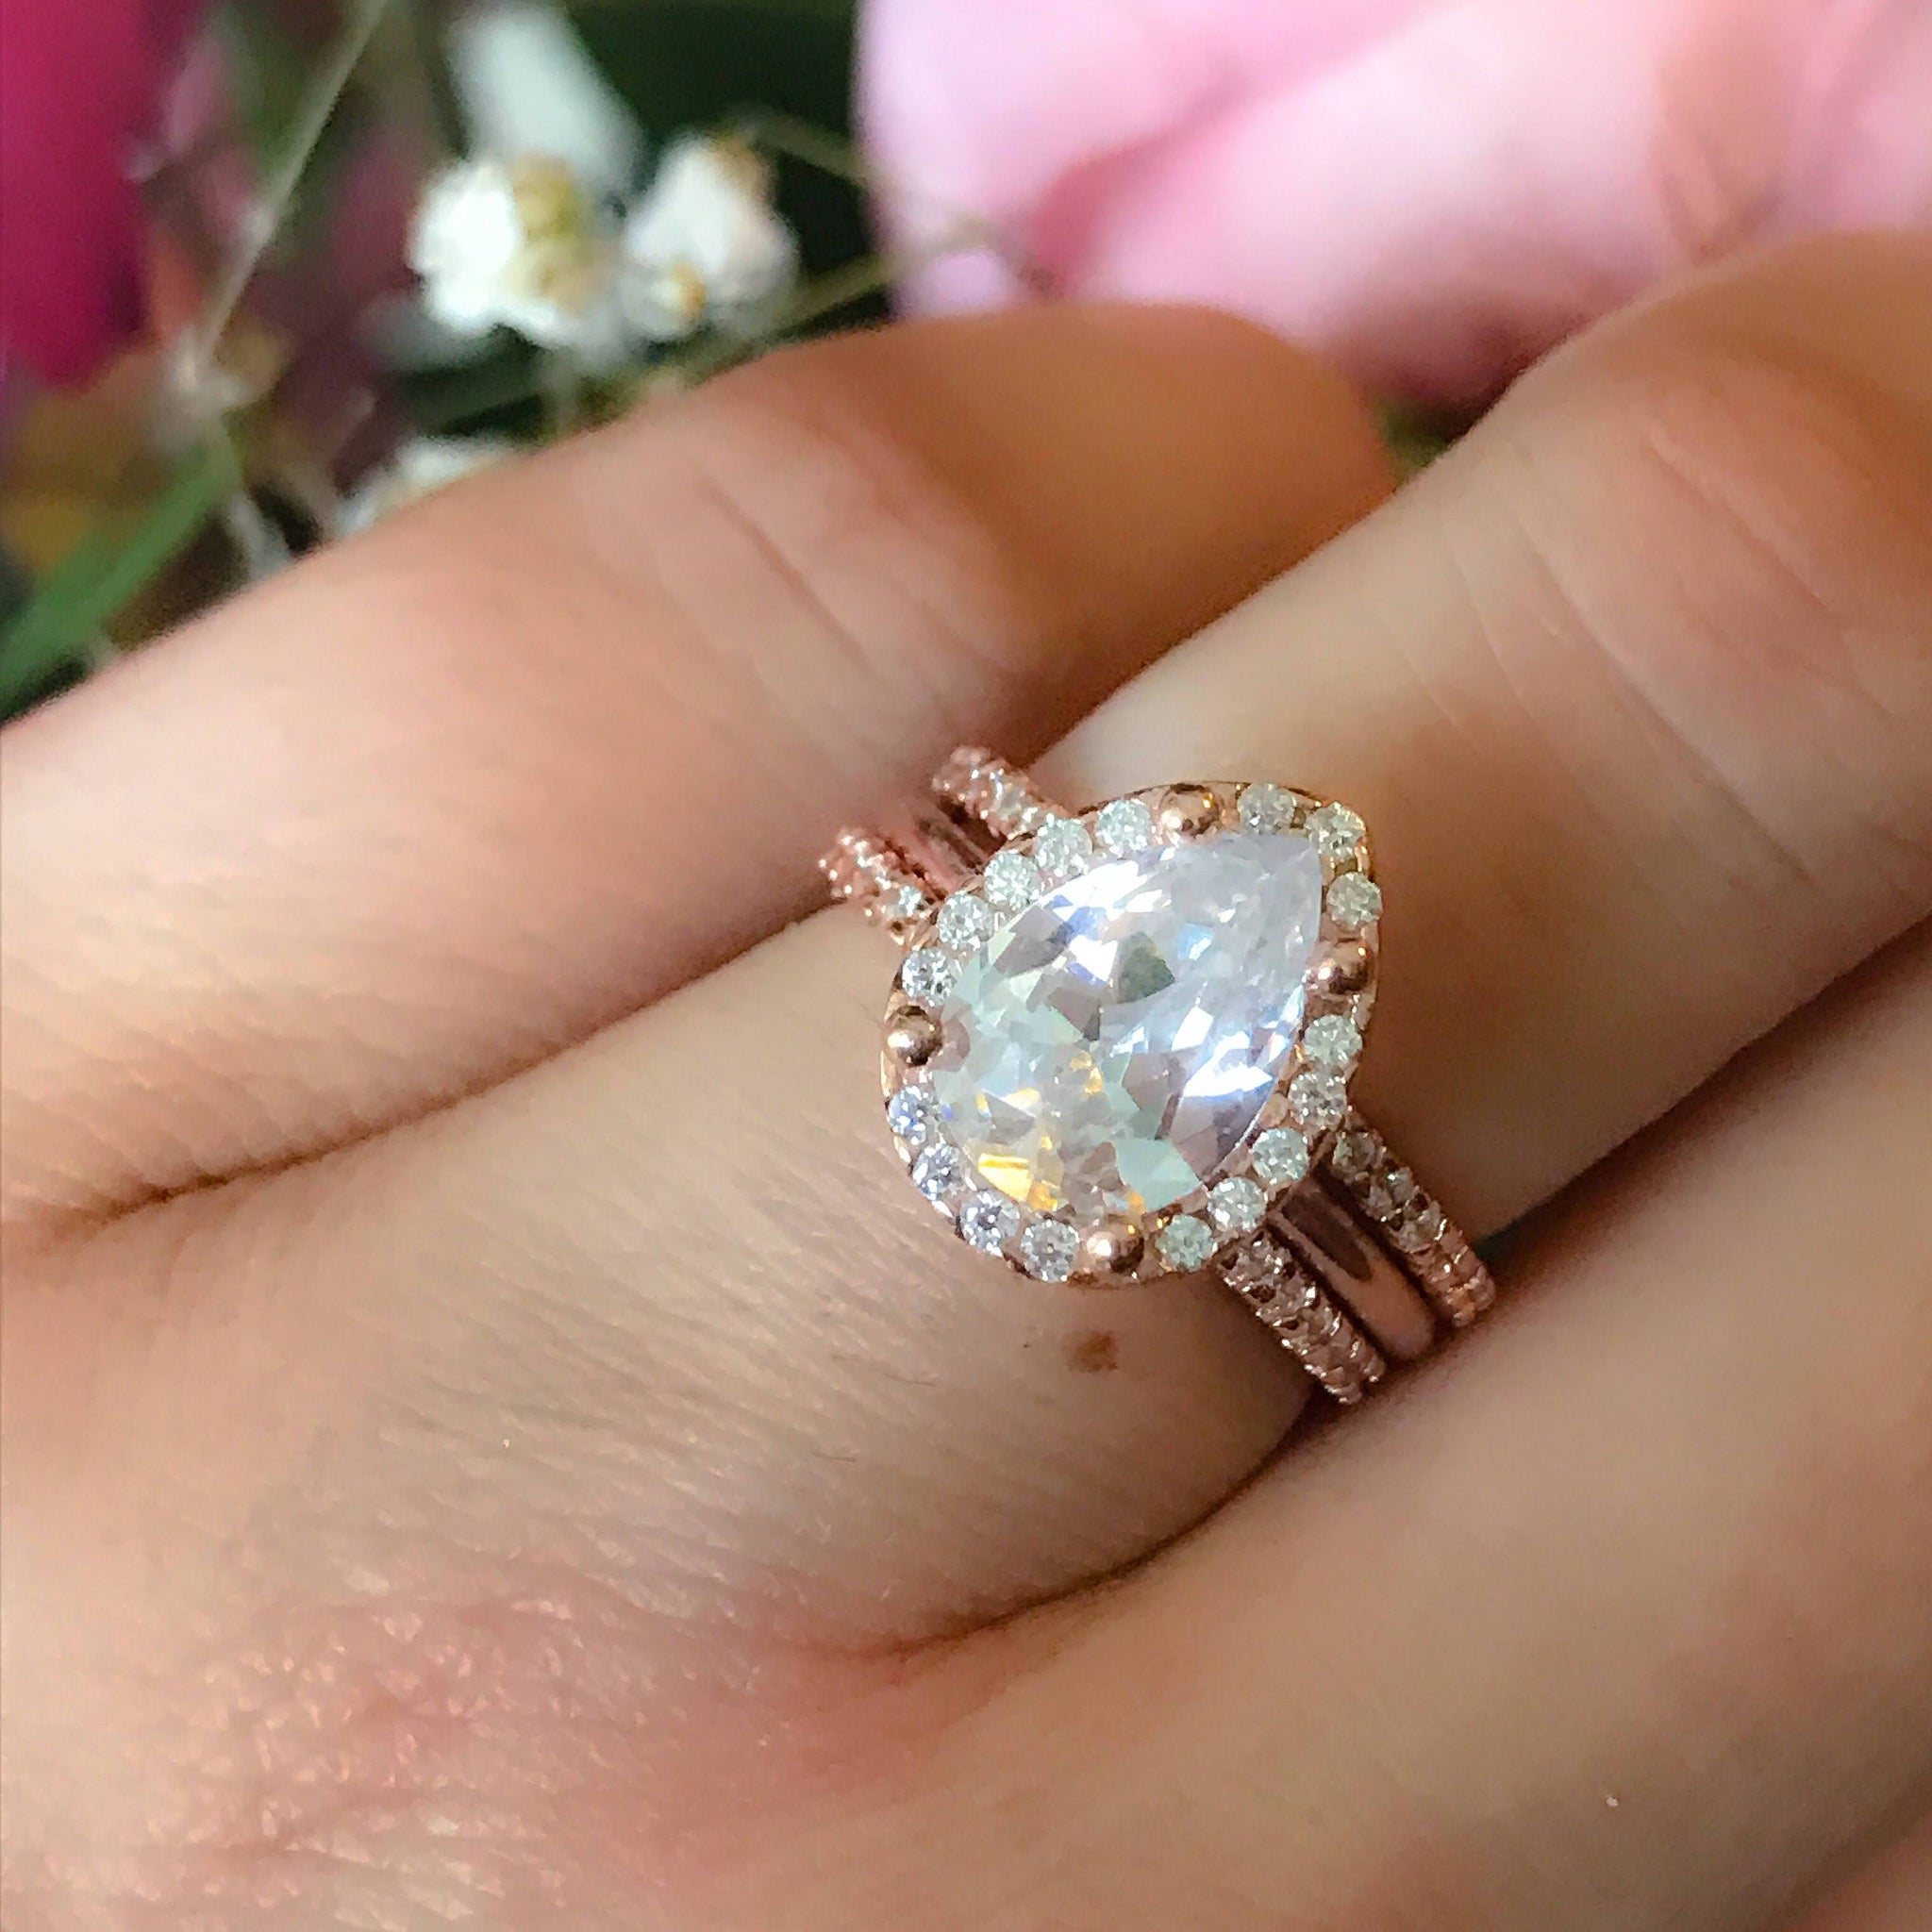 luxe engagement ring diamond shaped fine pear gold jewelry rings josephine blogs news progressive vintage rough